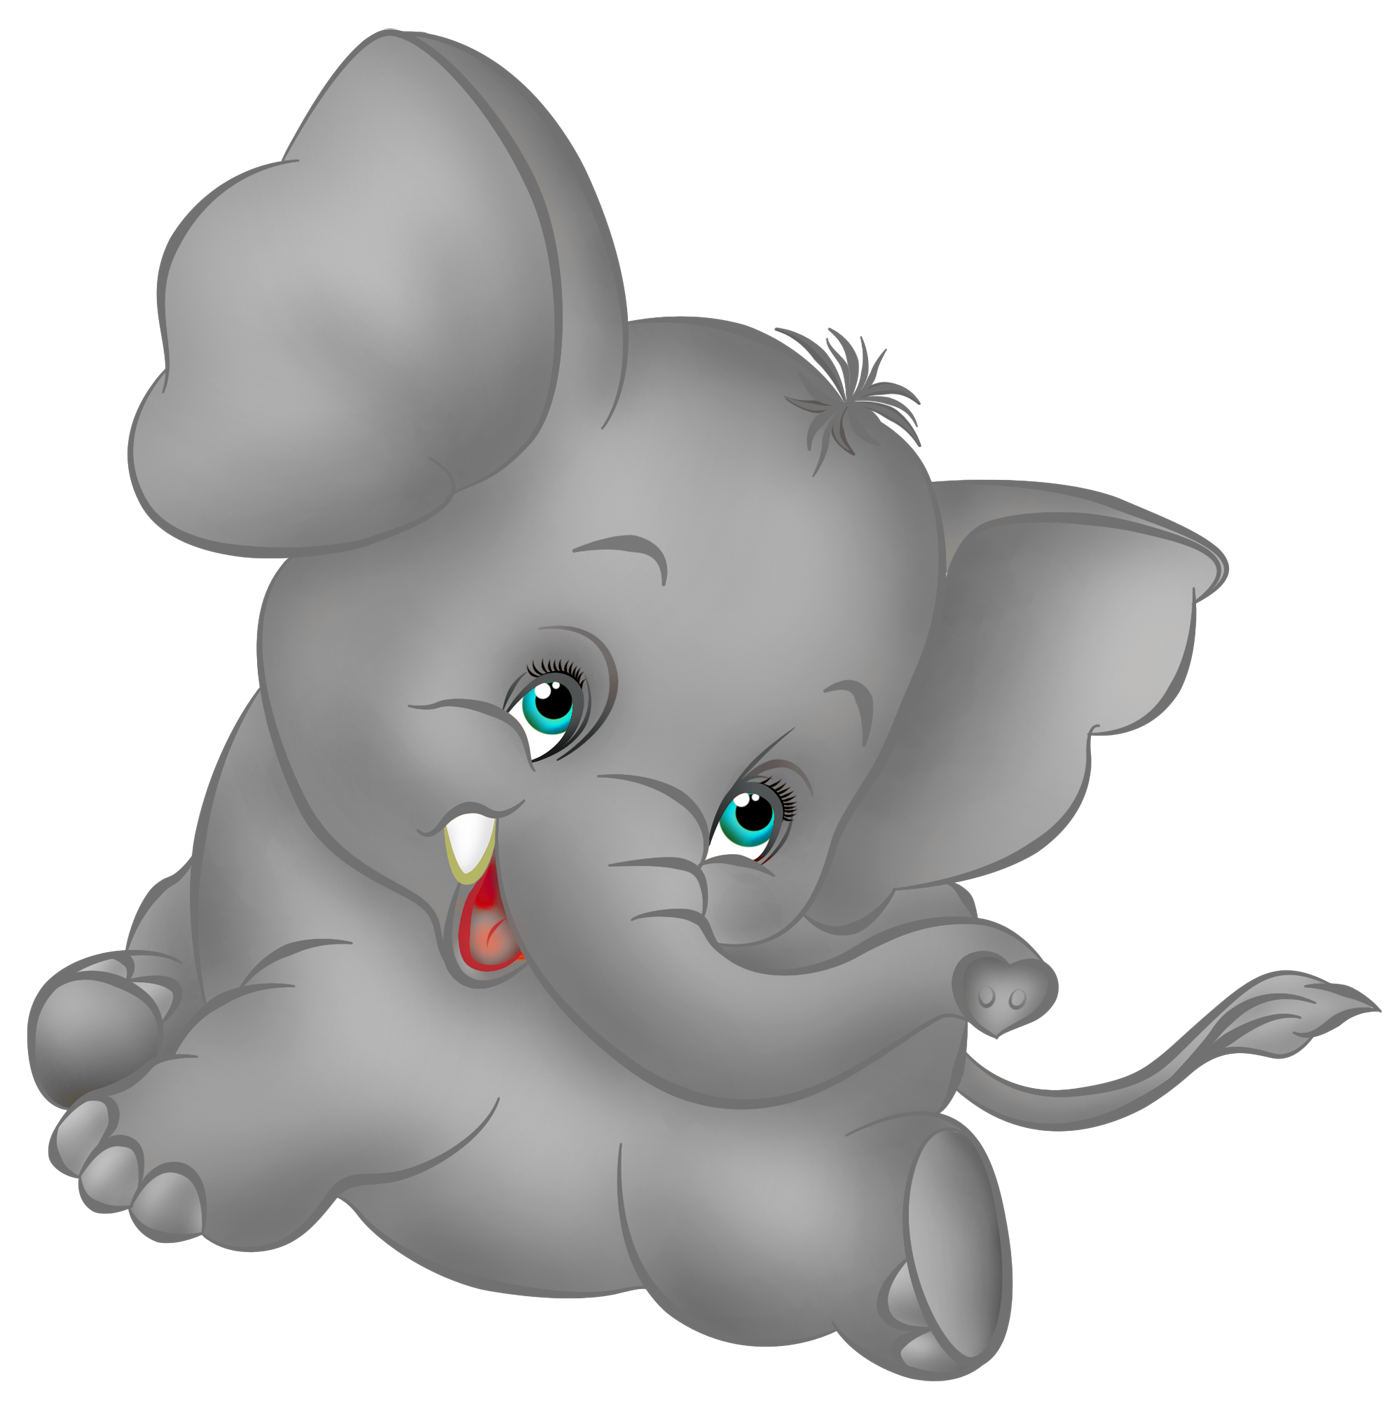 Grey elephant free elephants. Zucchini clipart cartoon